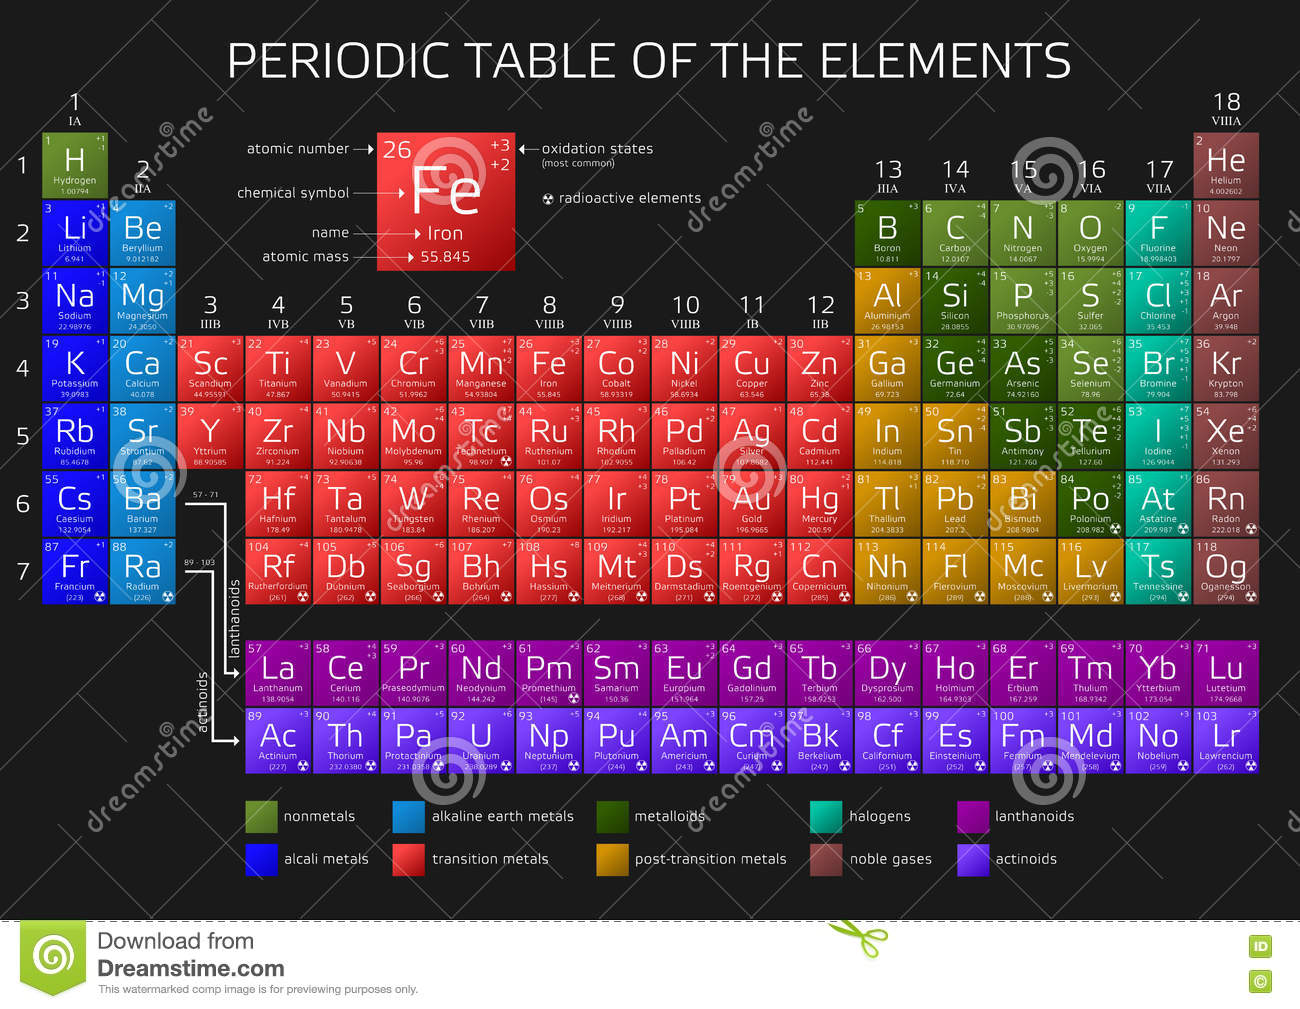 Mendeleevs periodic table of elements with new elements 2016 mendeleevs periodic table of elements with new elements 2016 scientific illustration buycottarizona